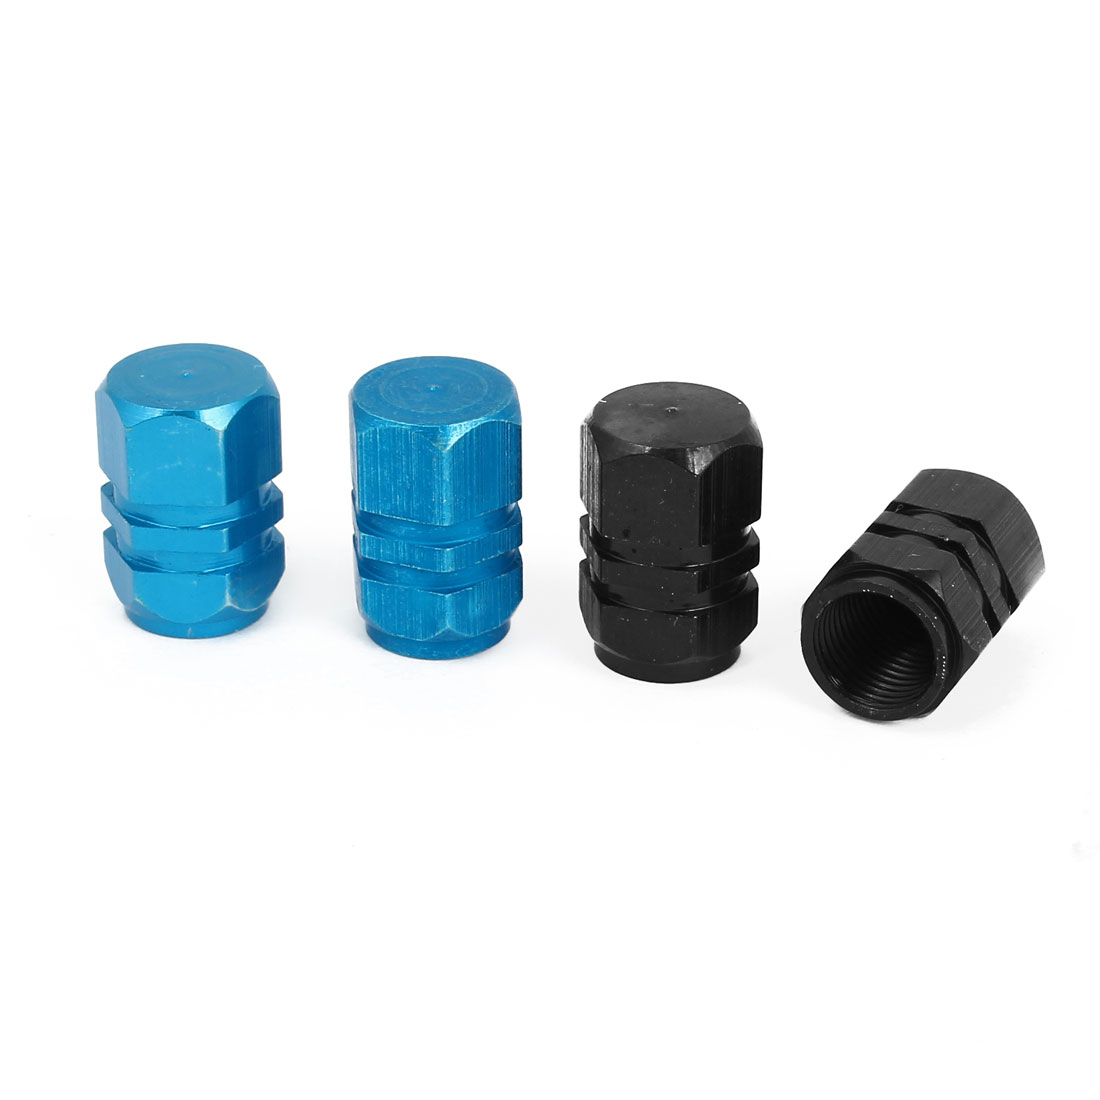 4 Pcs Hexagon Design Tyre Tire Valve Stems Caps Covers Protector Black Blue for Car